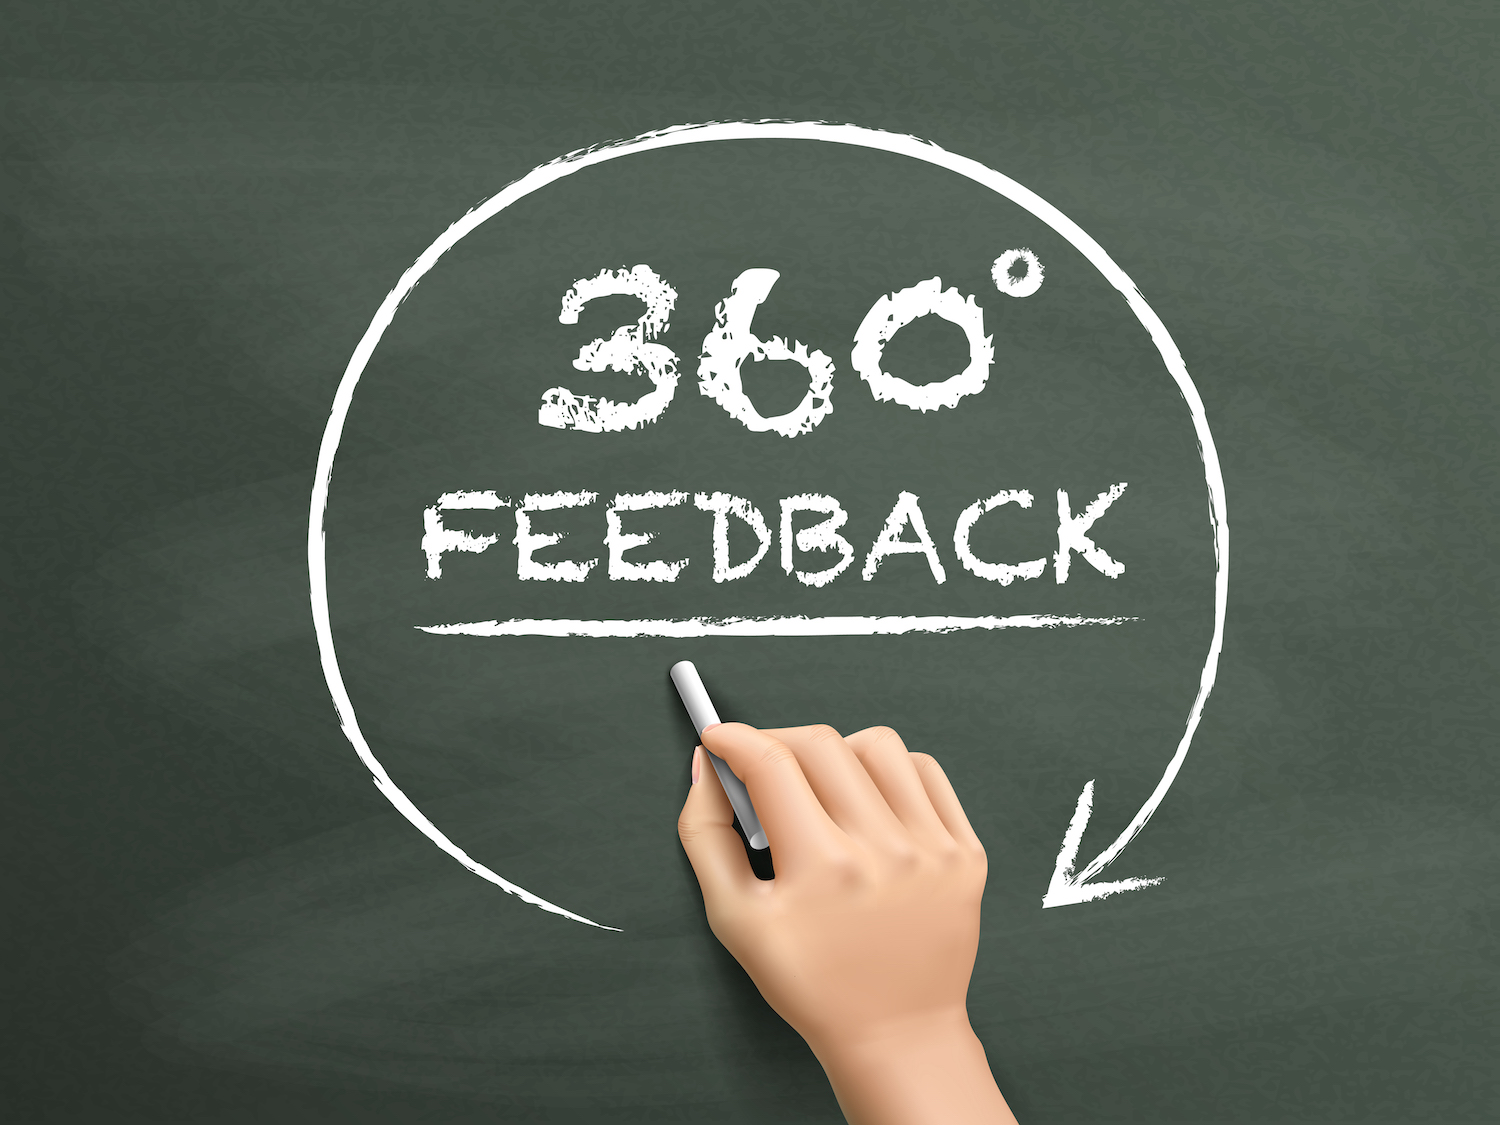 Feedback From Destructive To Constructive